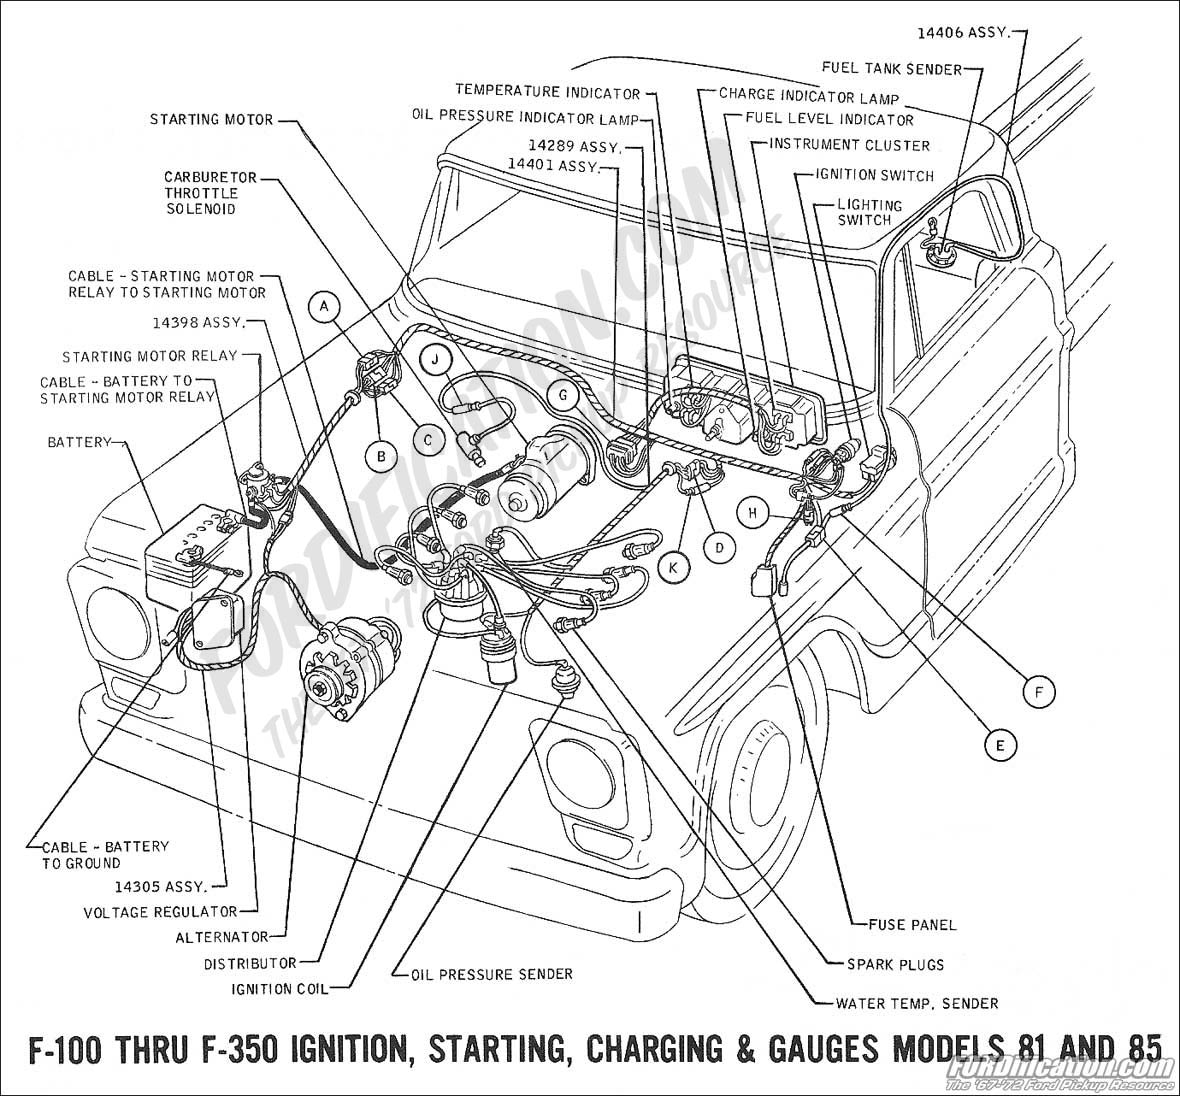 ford truck technical drawings and schematics section h 1975 dodge wiring diagrams 1975 ford truck wiring diagrams #8